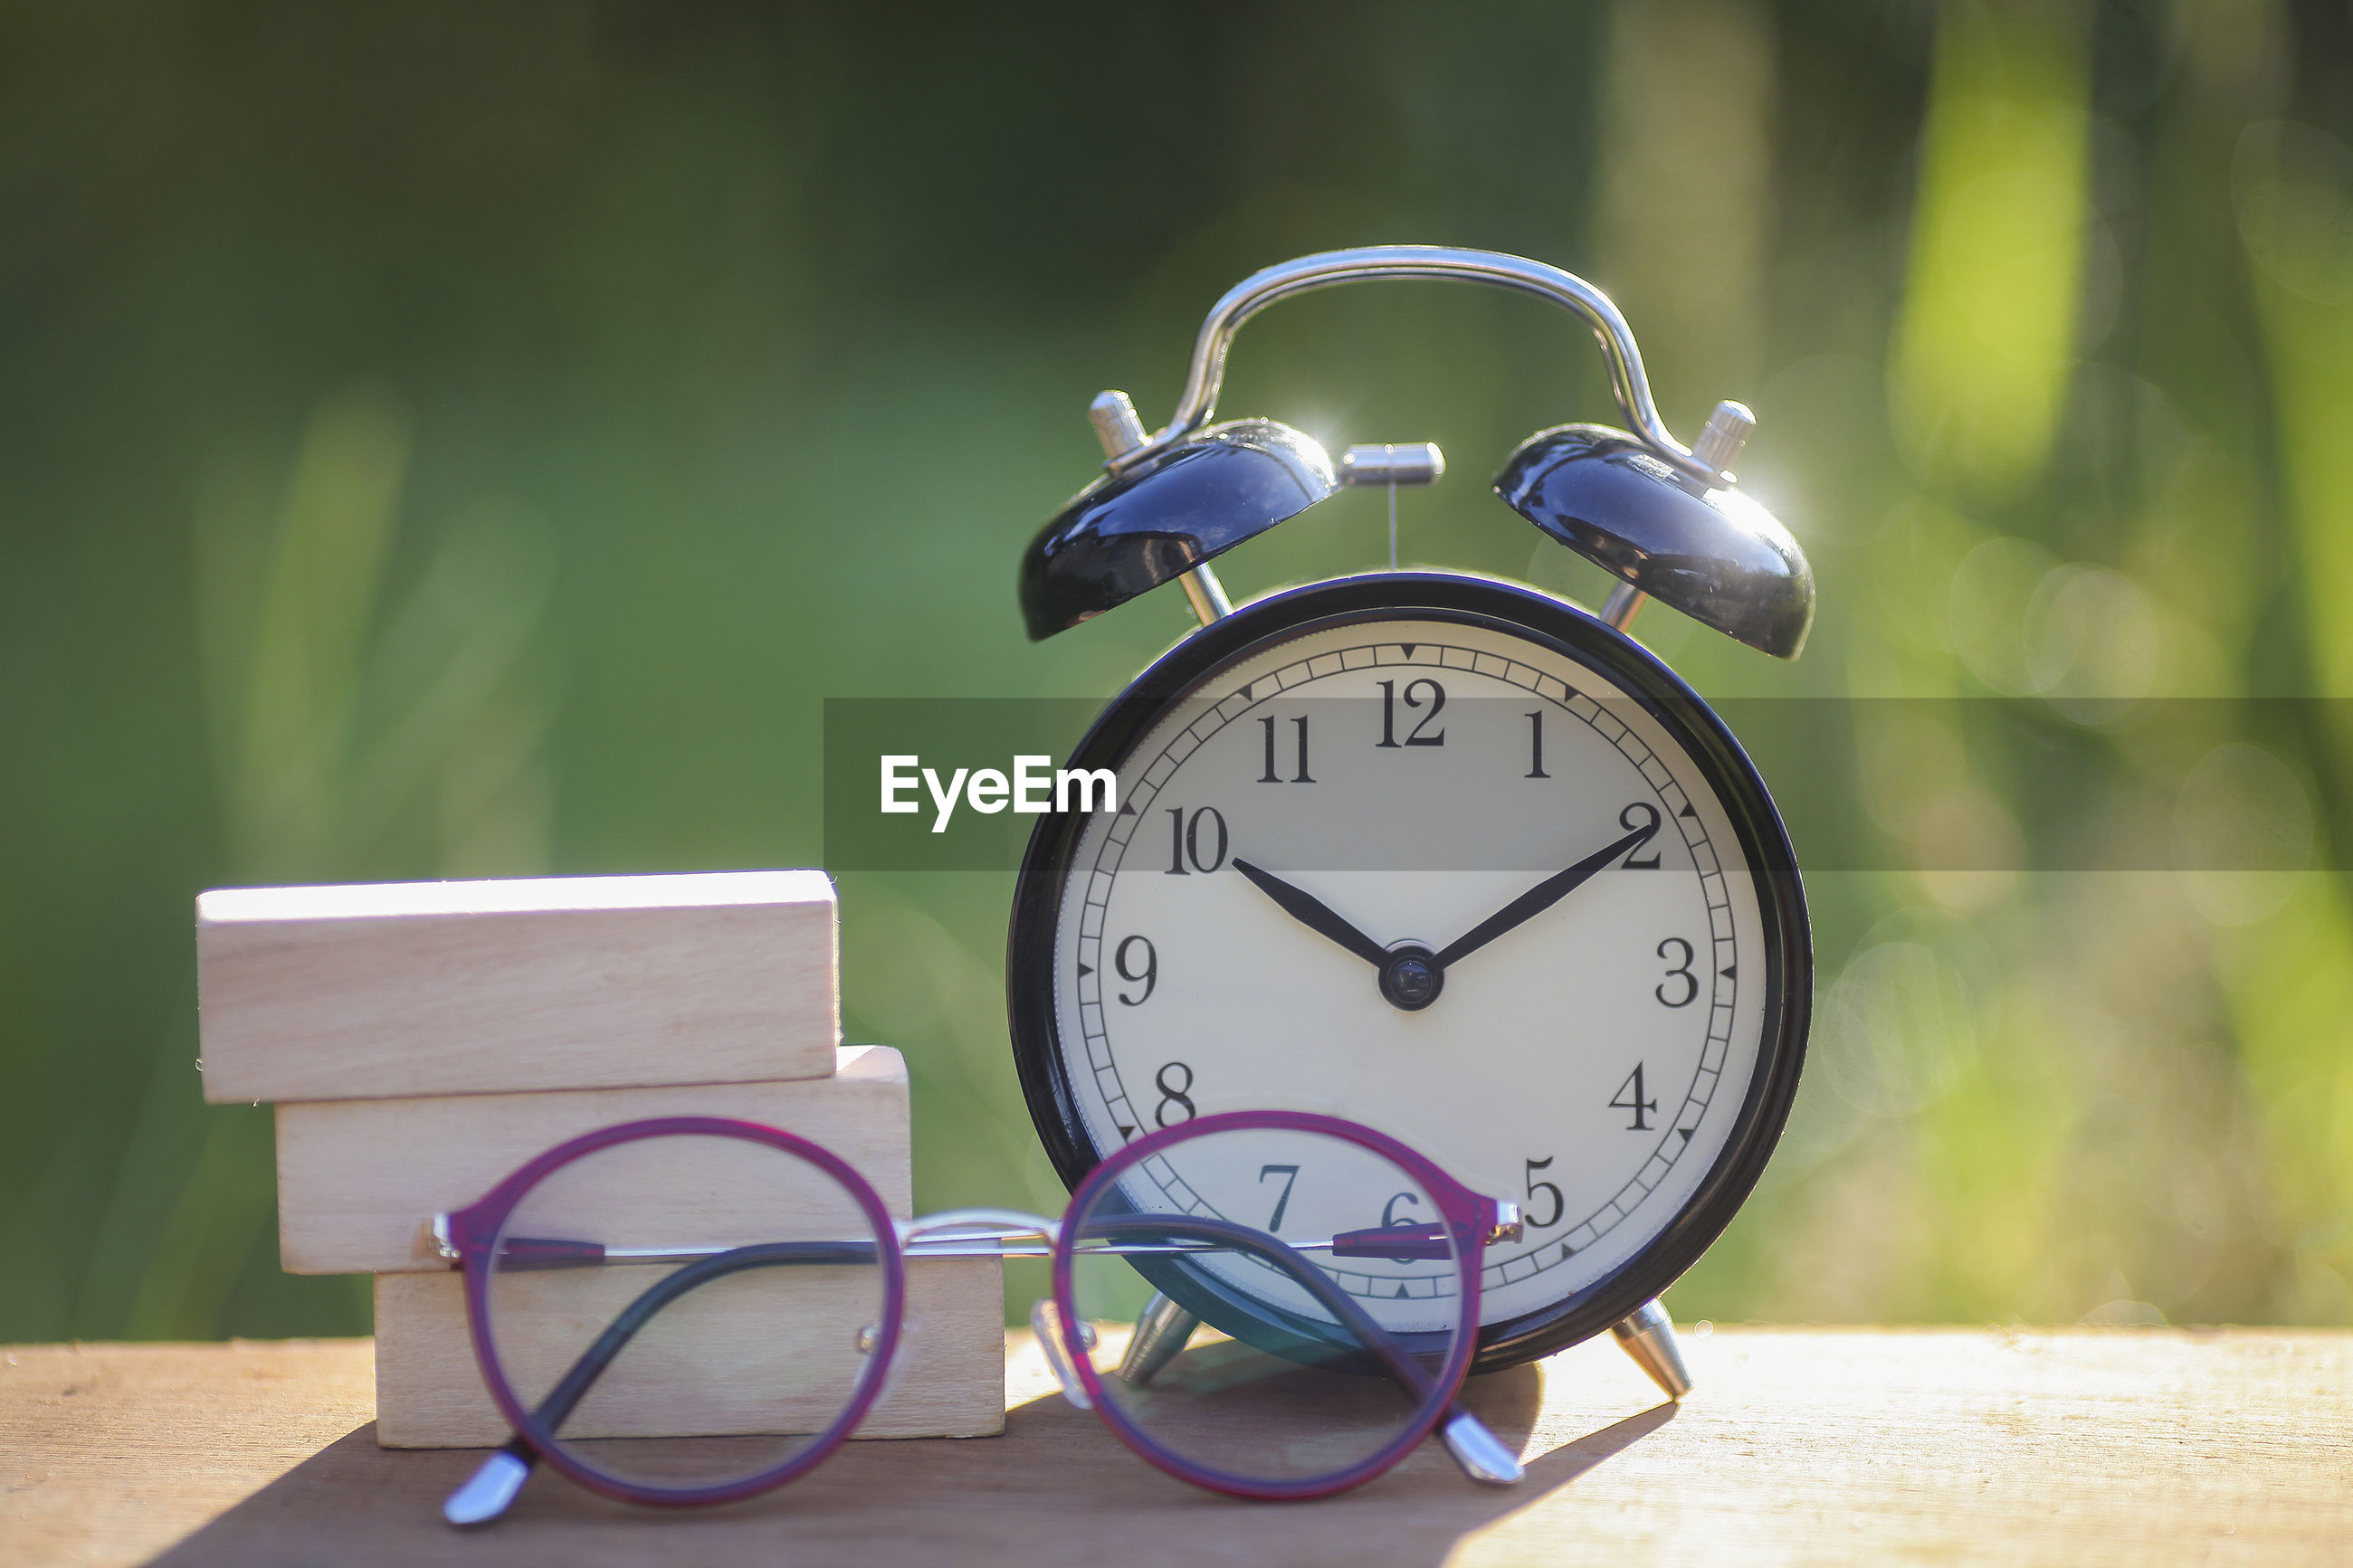 Close-up of eyeglasses by book and alarm clock on table